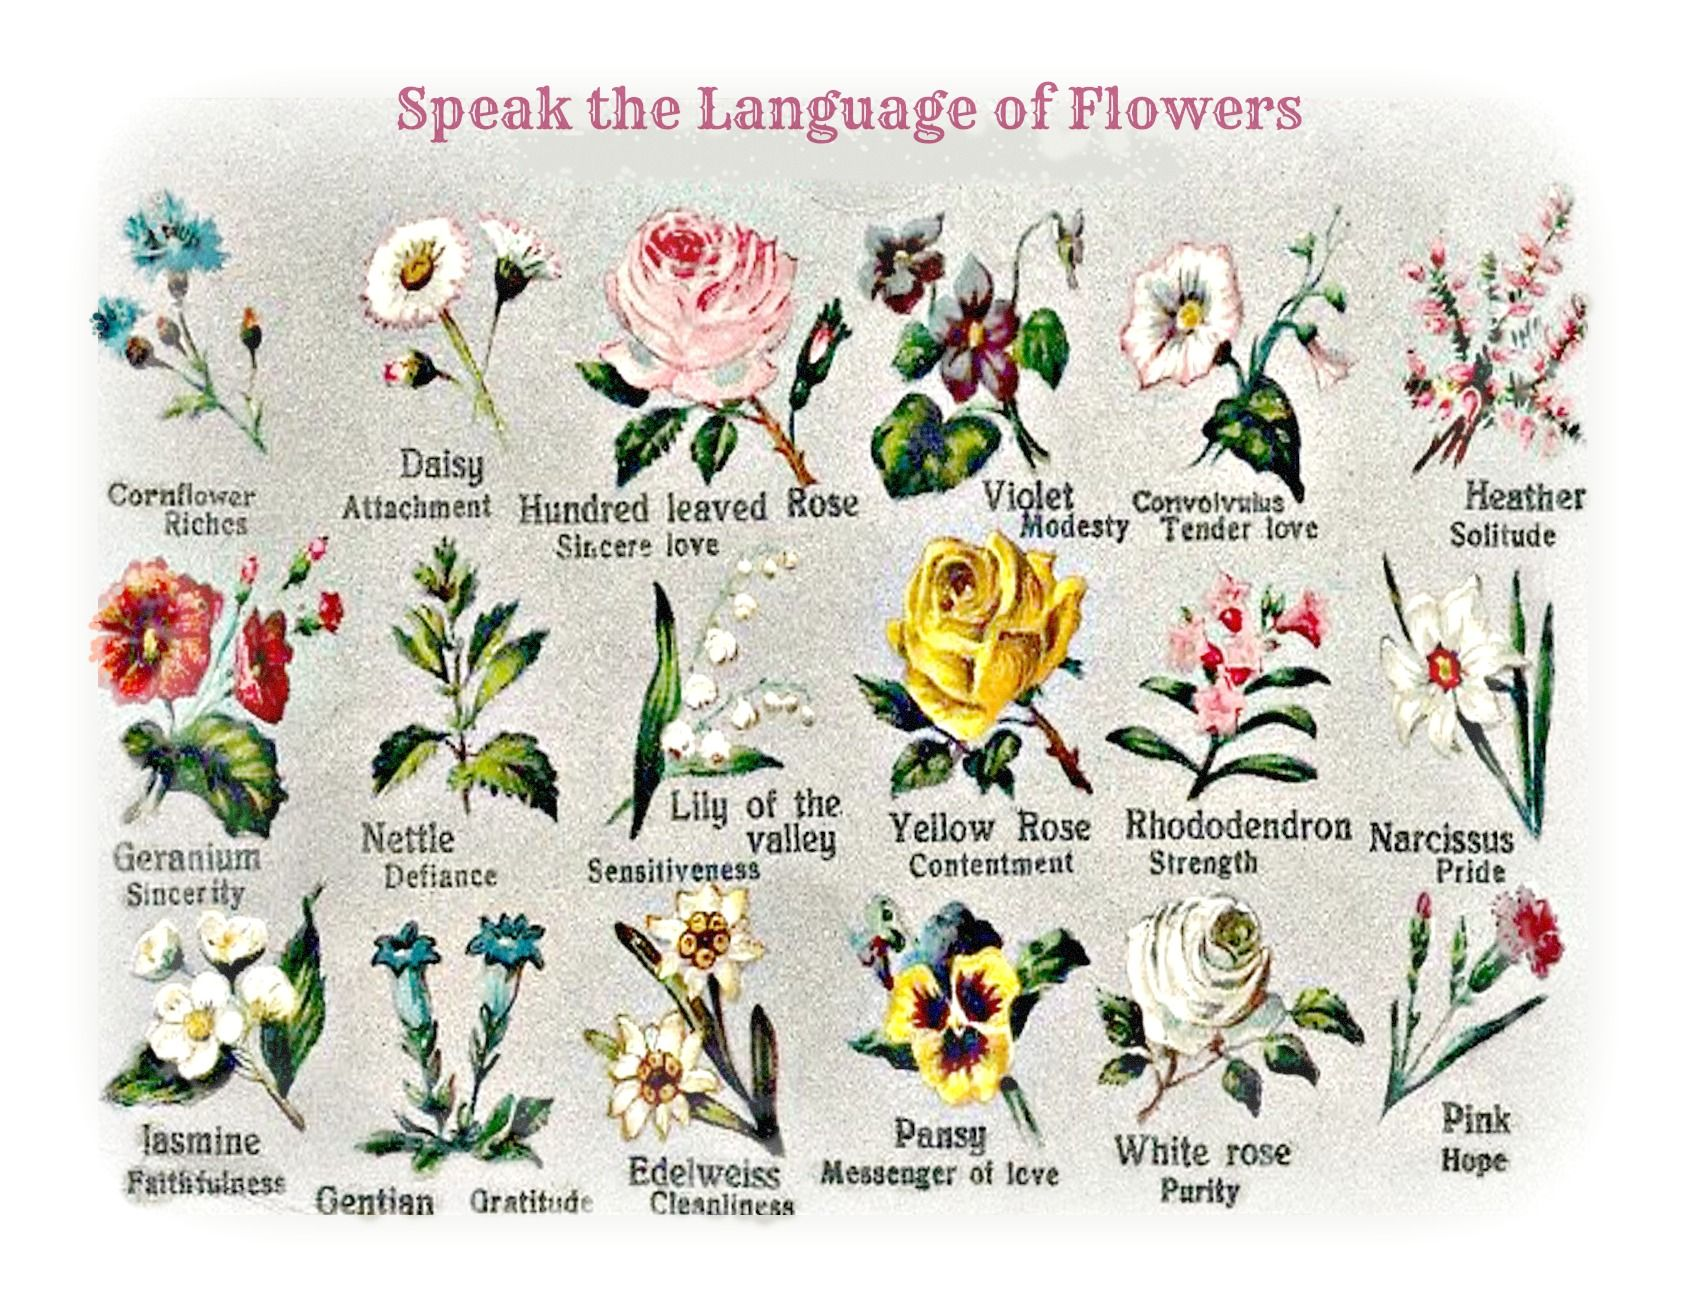 Speak the Language of Flowers. From an early 1900's